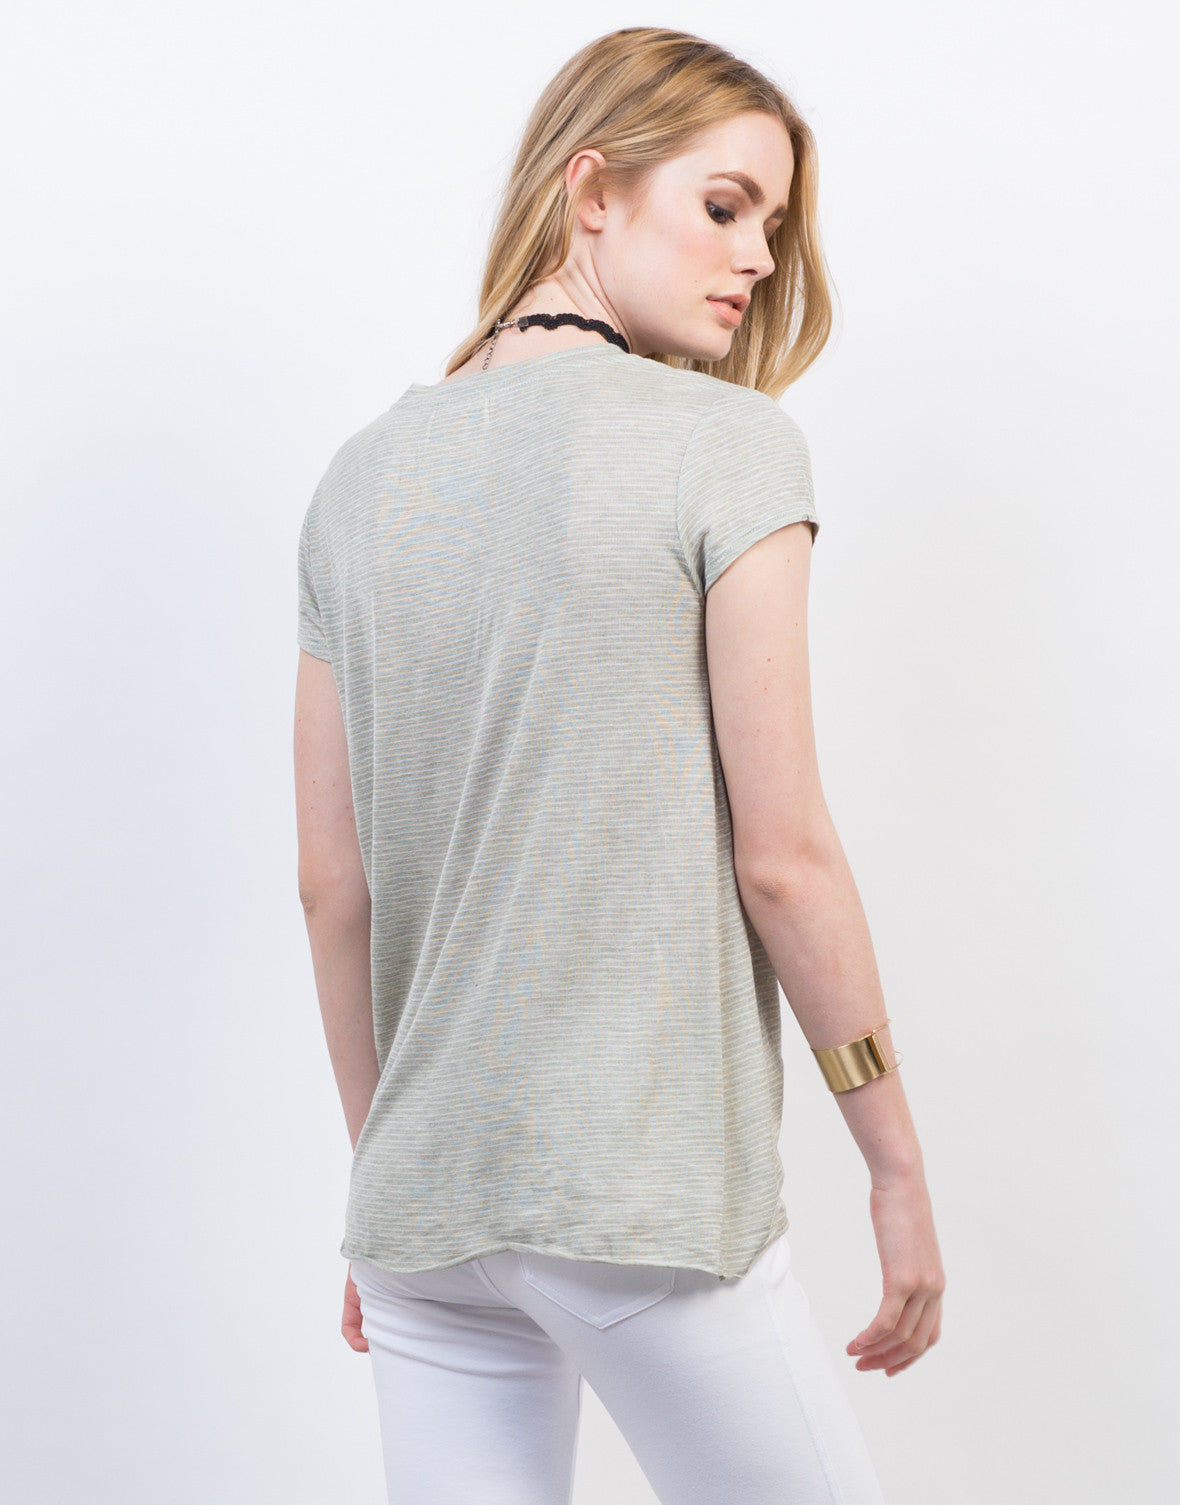 Back View of Knot It Up Tee